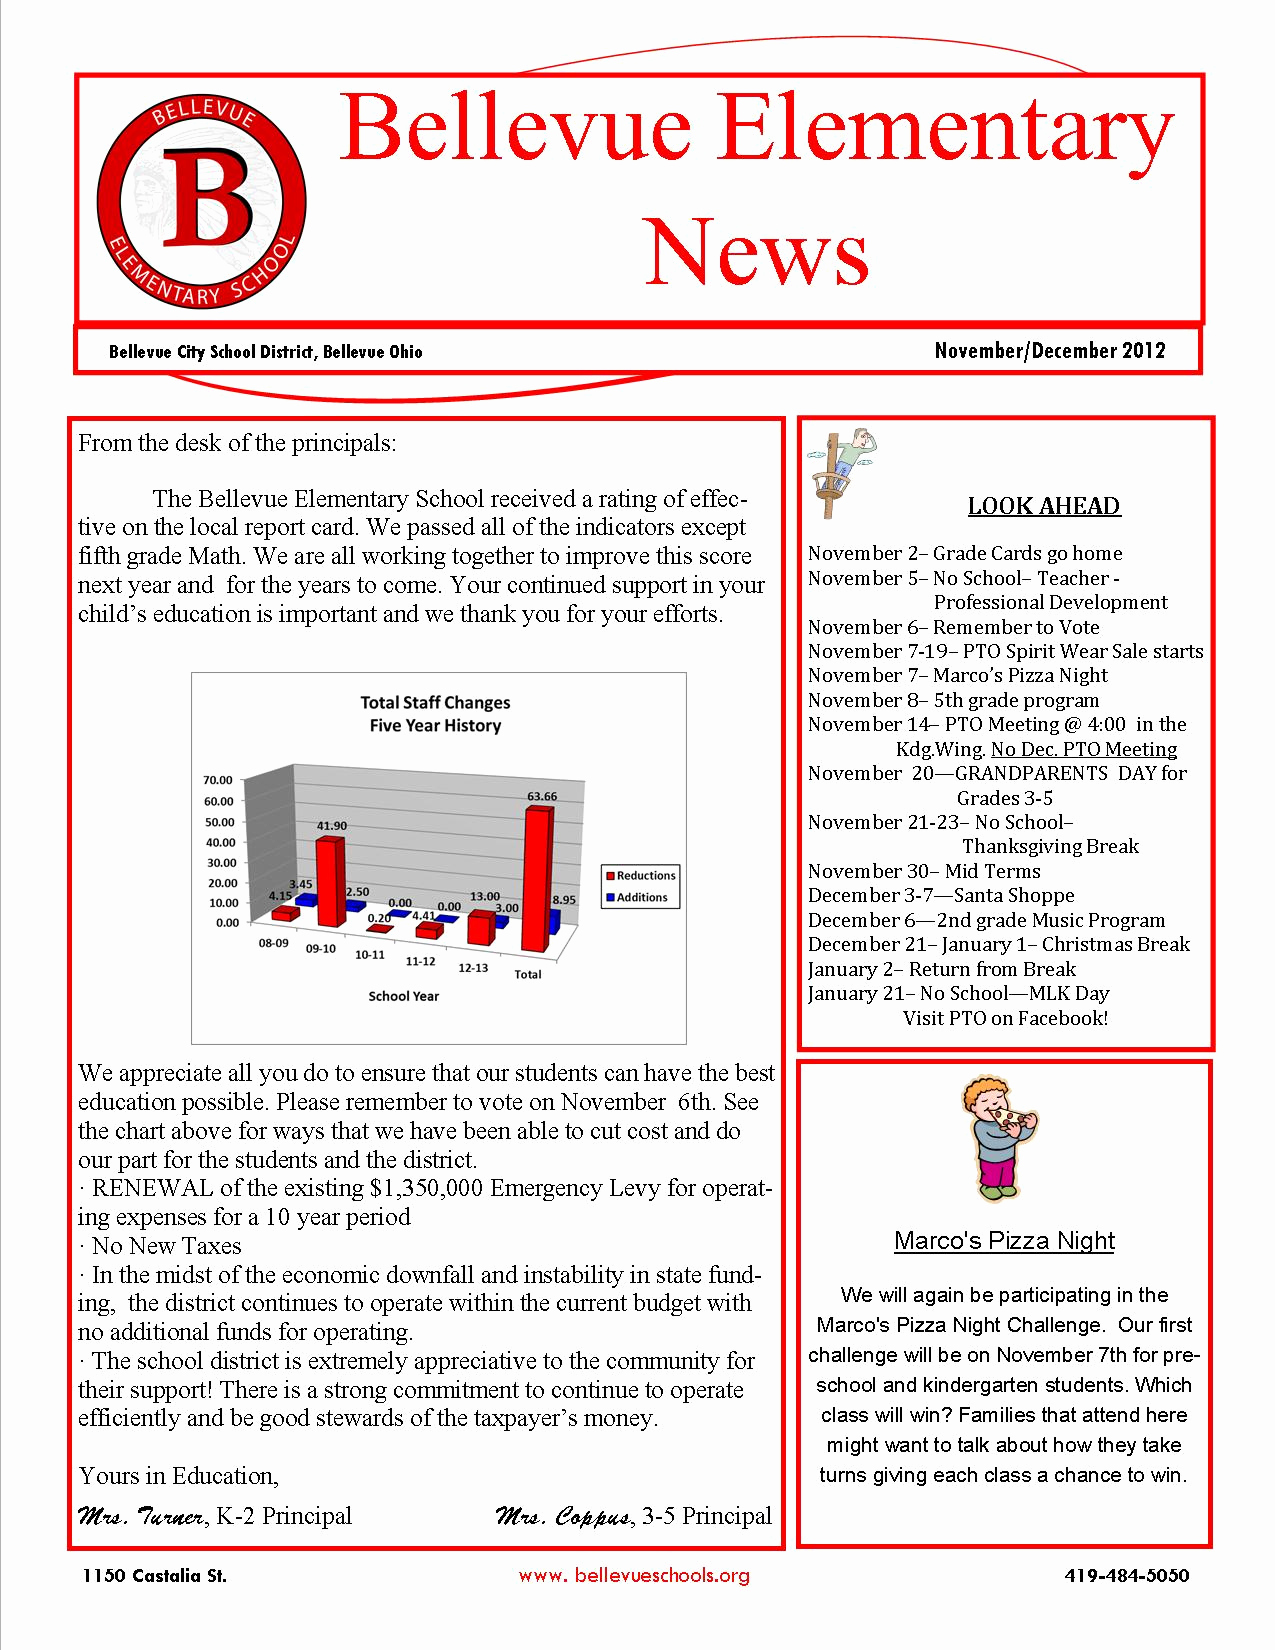 Elementary School Newsletter Template Awesome Elementary School Newsletters 5th Grade Class Newsletter